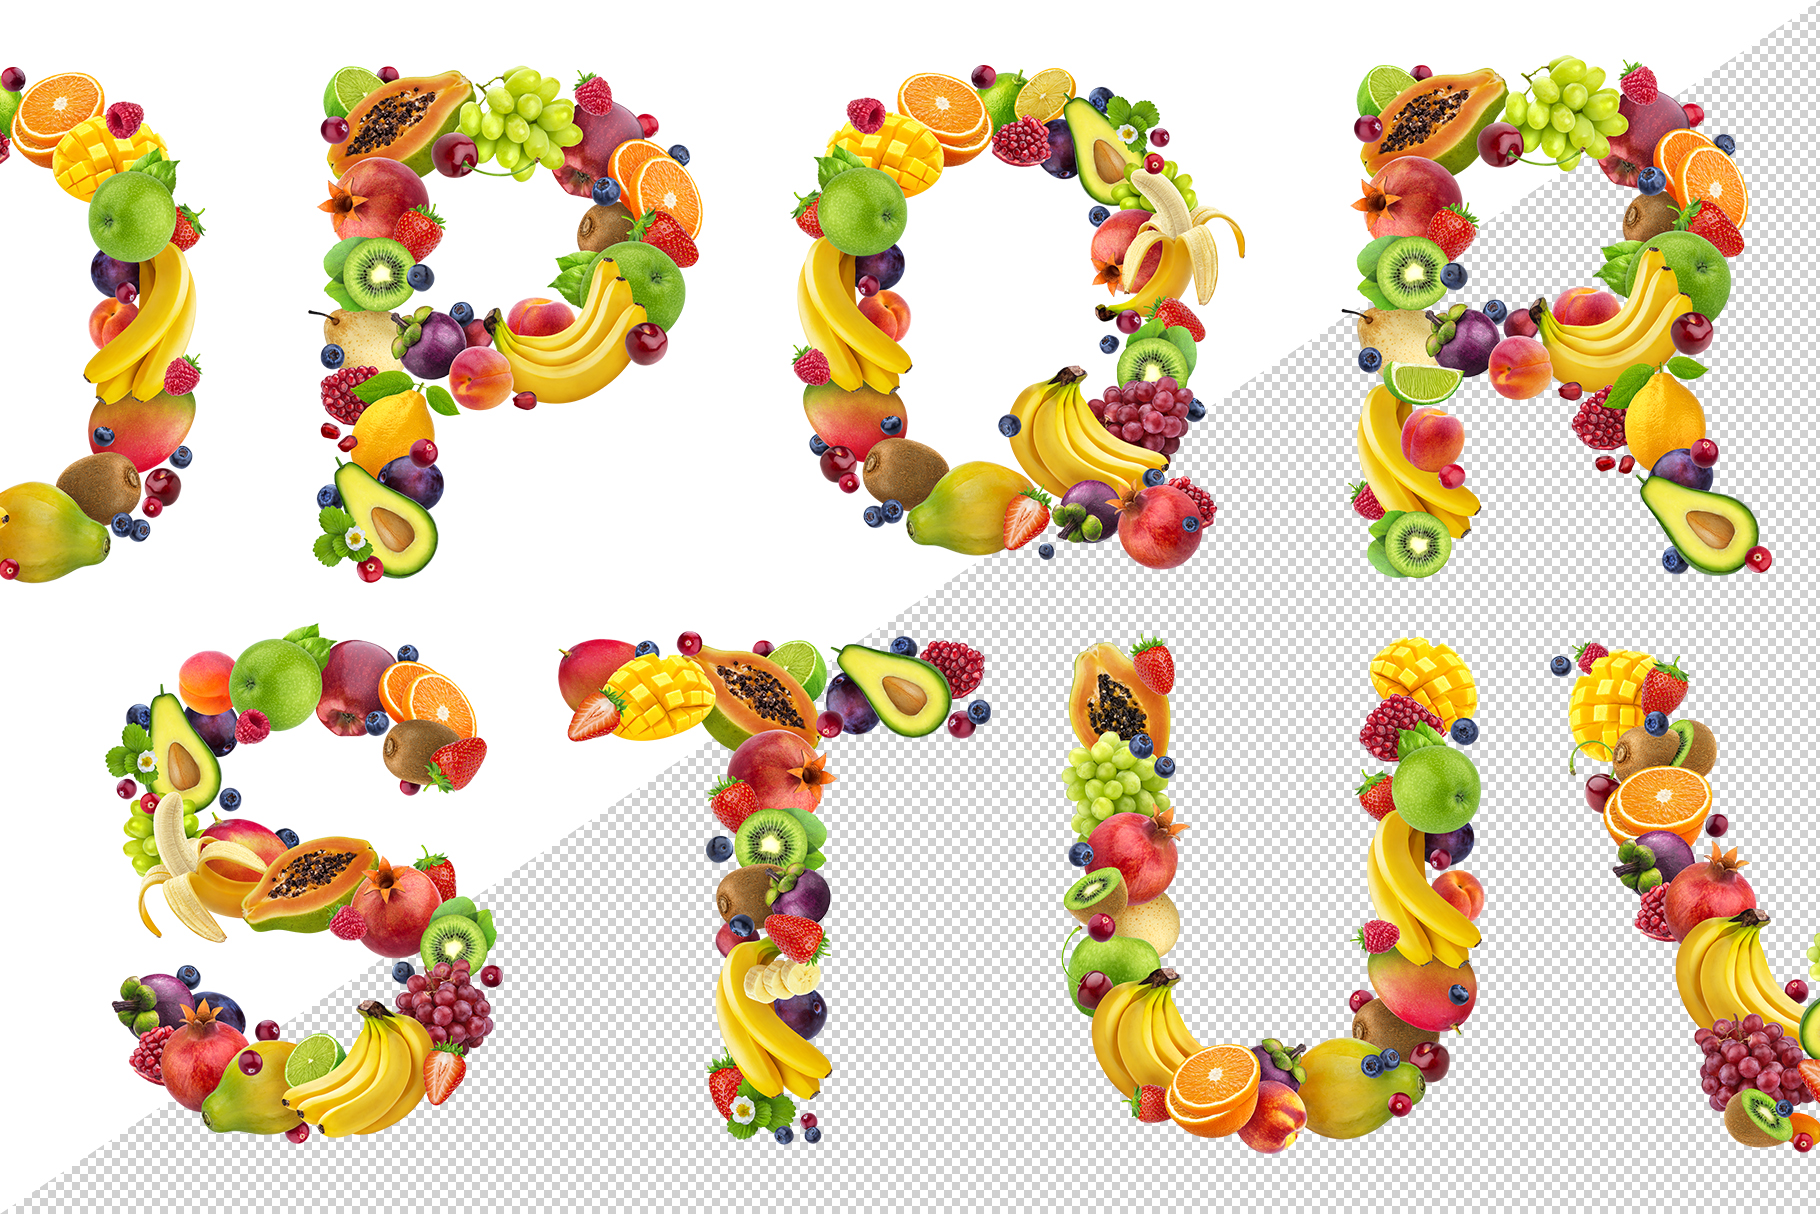 Fruits and berries alphabet, healthy alphabet example image 5